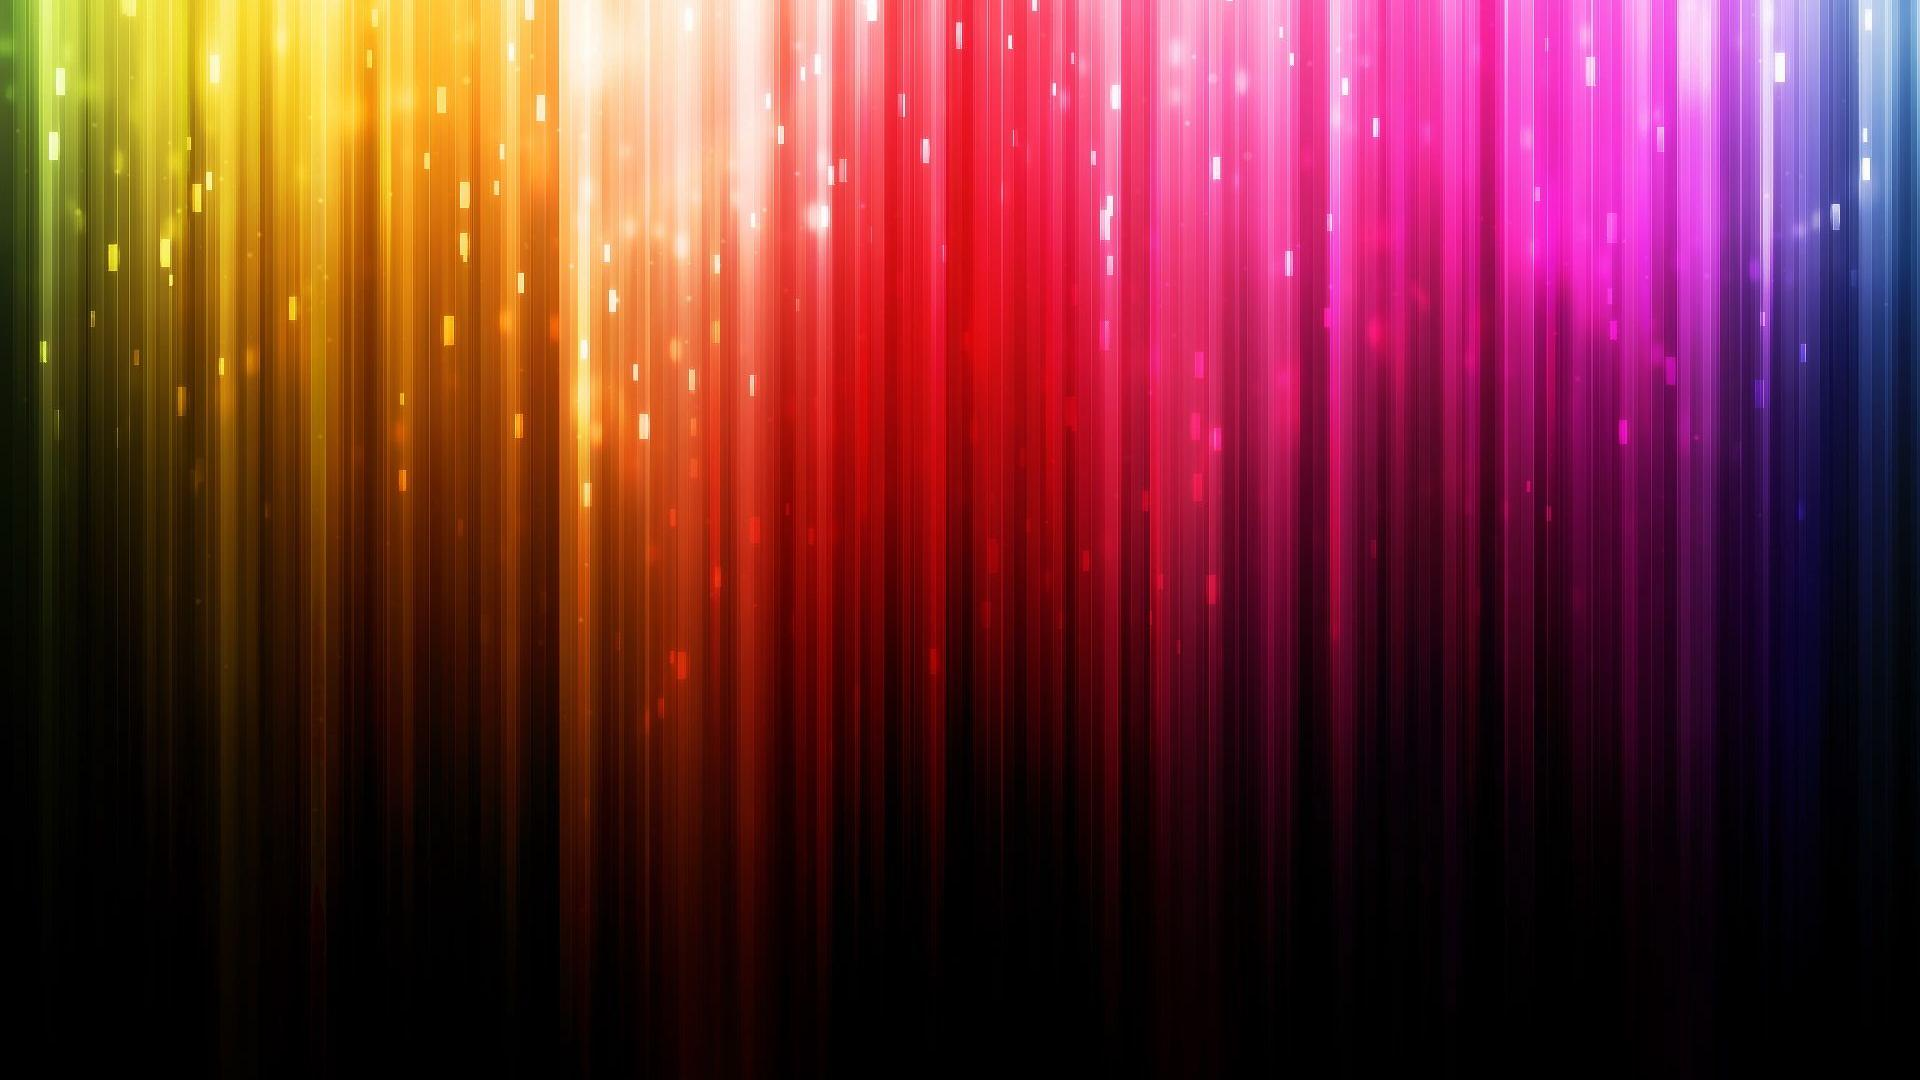 download 1080p high definition backgrounds wide backgrounds 1280x800 1920x1080